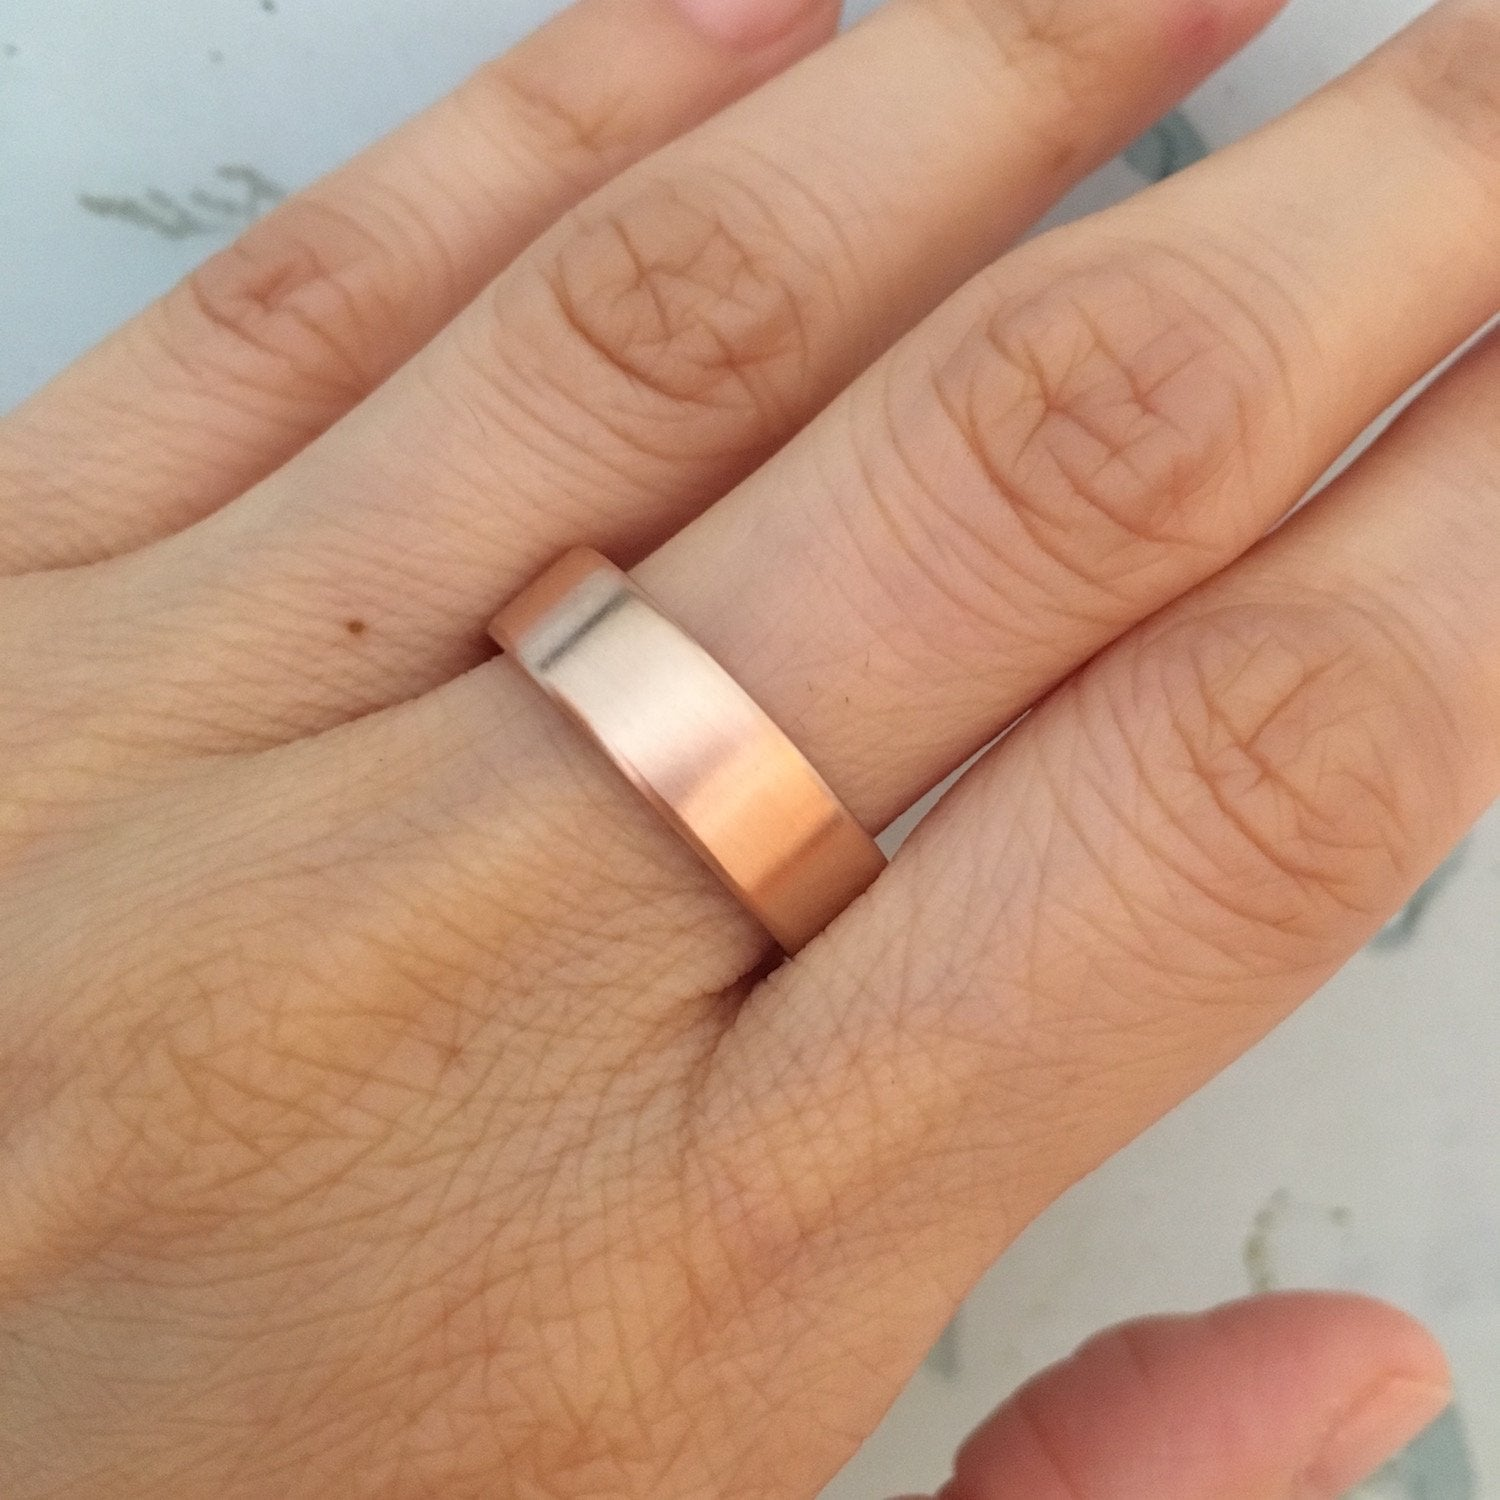 wedding rose gold matte bands tweet products mens in share by design pinterest comfort twitter his it solid la pin on band flat fit ring more facebook